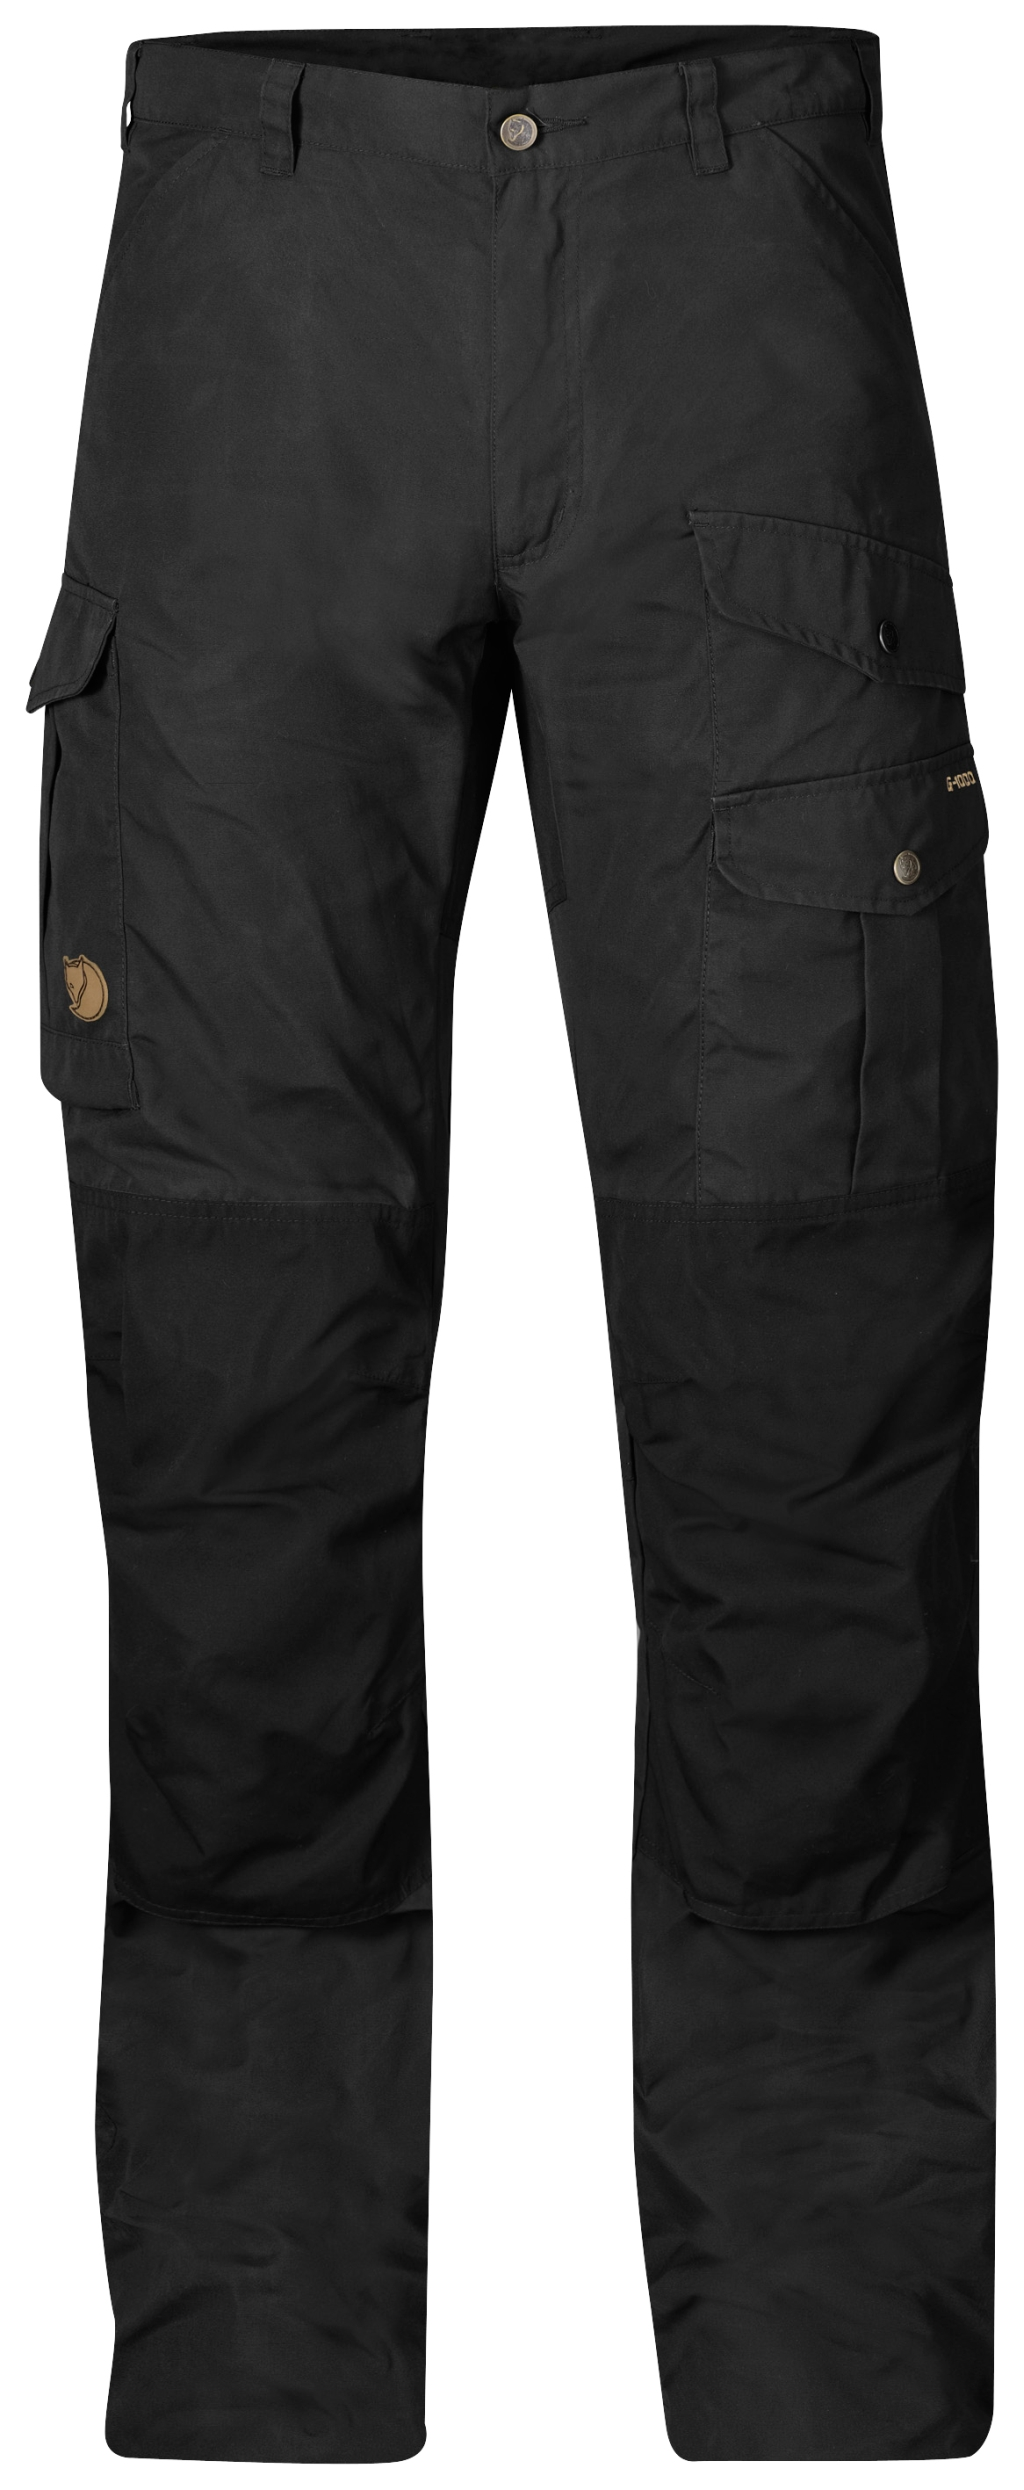 FjallRaven Barents Pro Hydr. Trousers Dark Grey-30